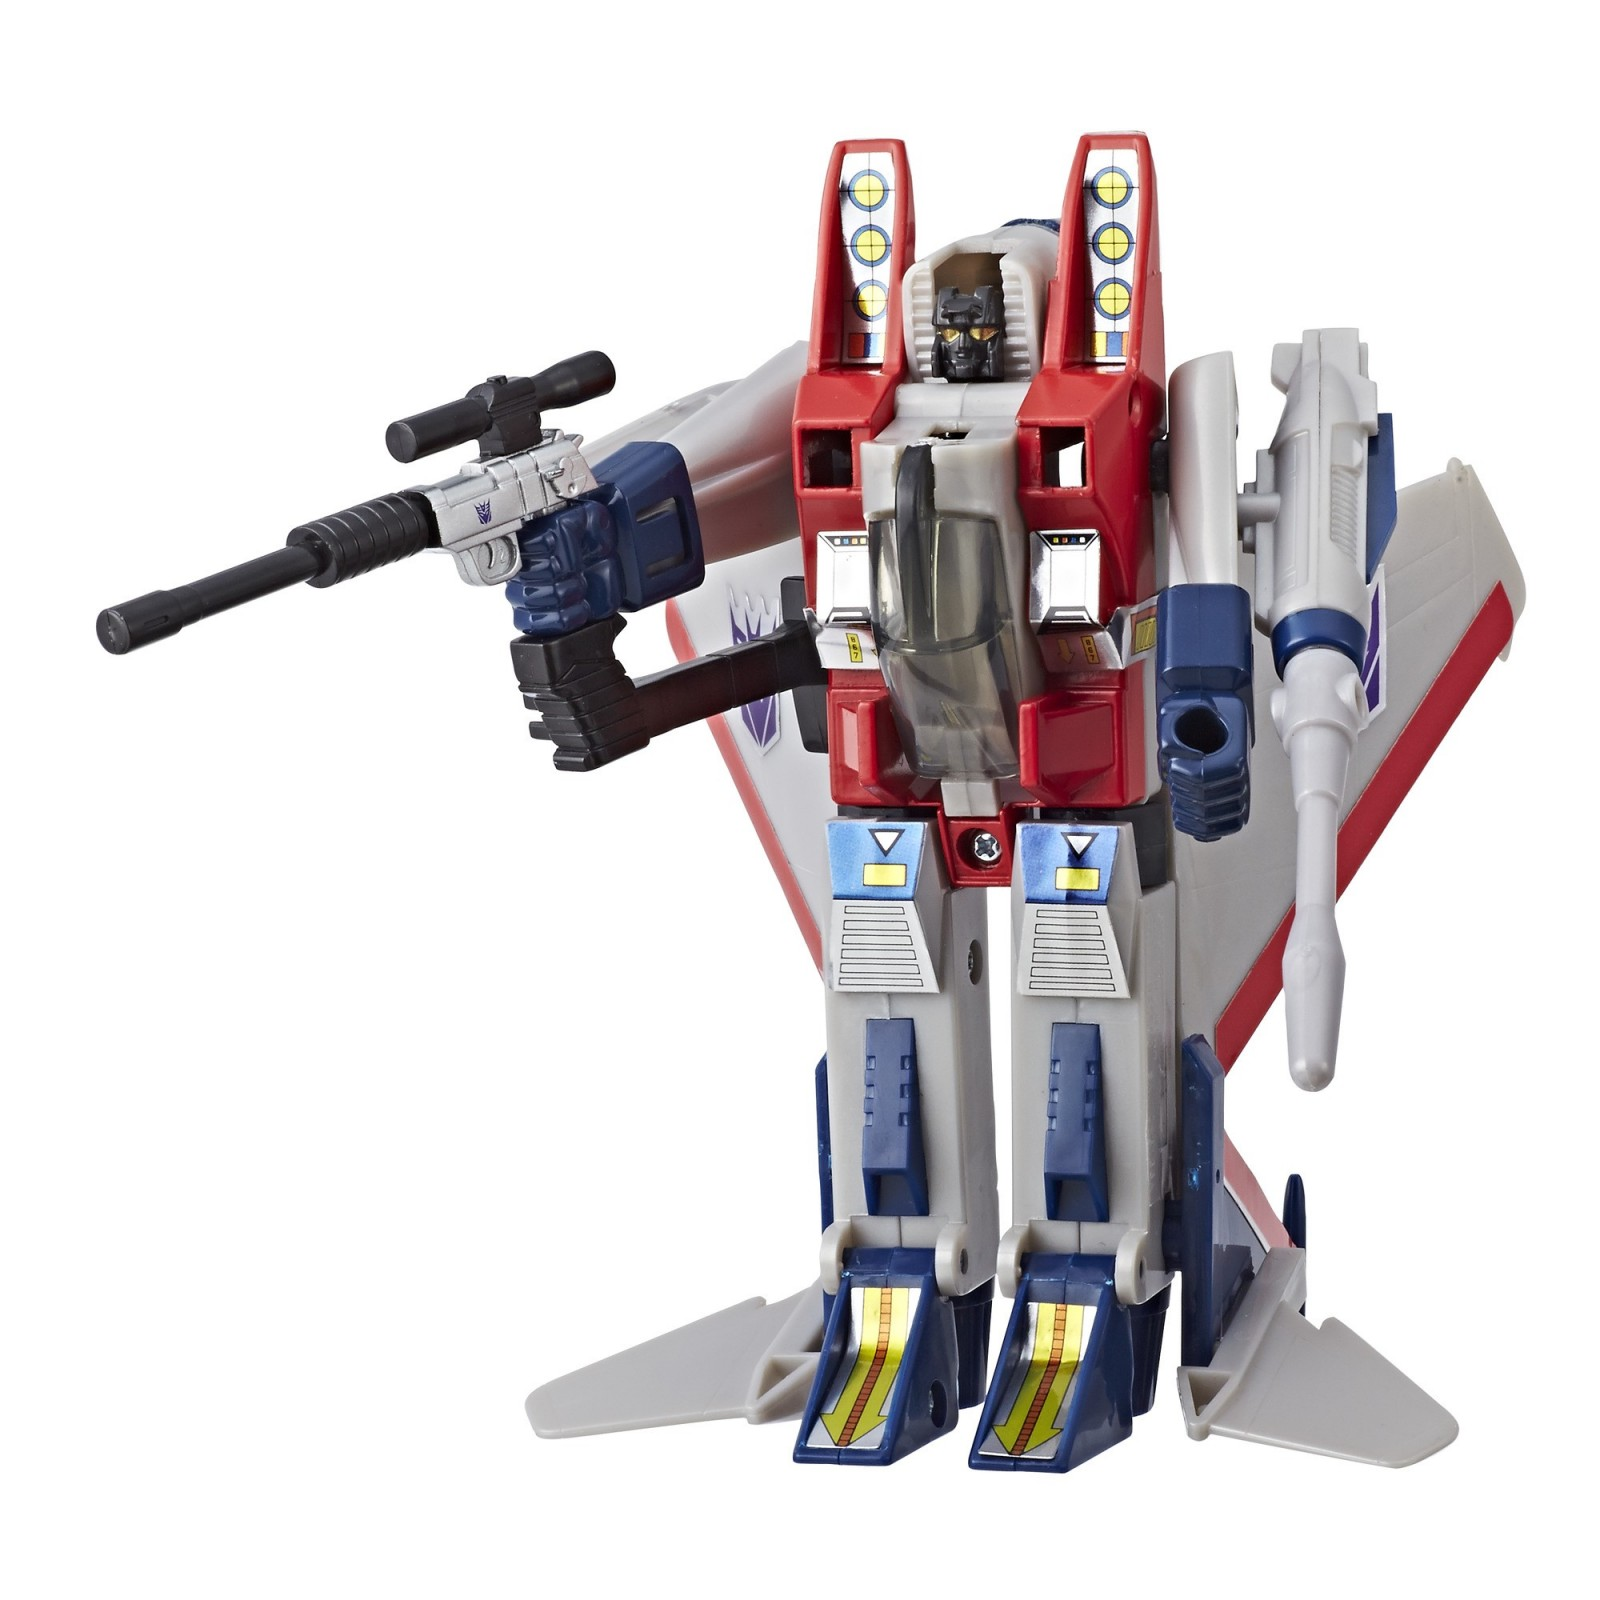 Transformers News: More G1 Transformers to be Reissued in 2018 with Devastator, Starscream and the Minibots